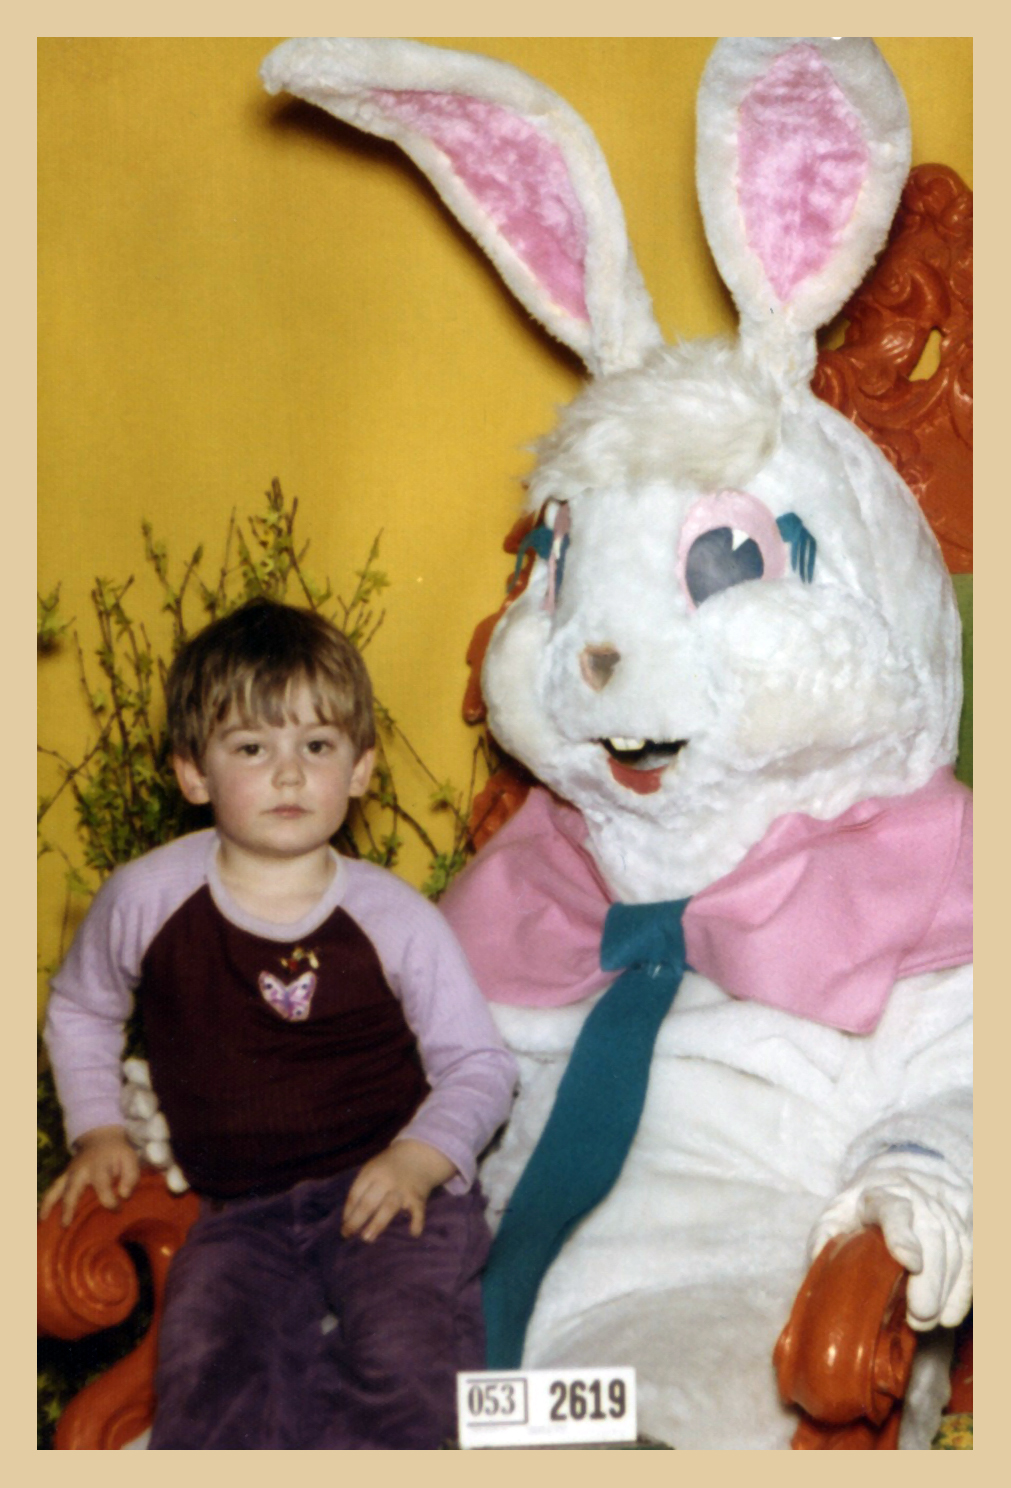 ghosts of easter past vintage easter bunny pictures u2022 are you